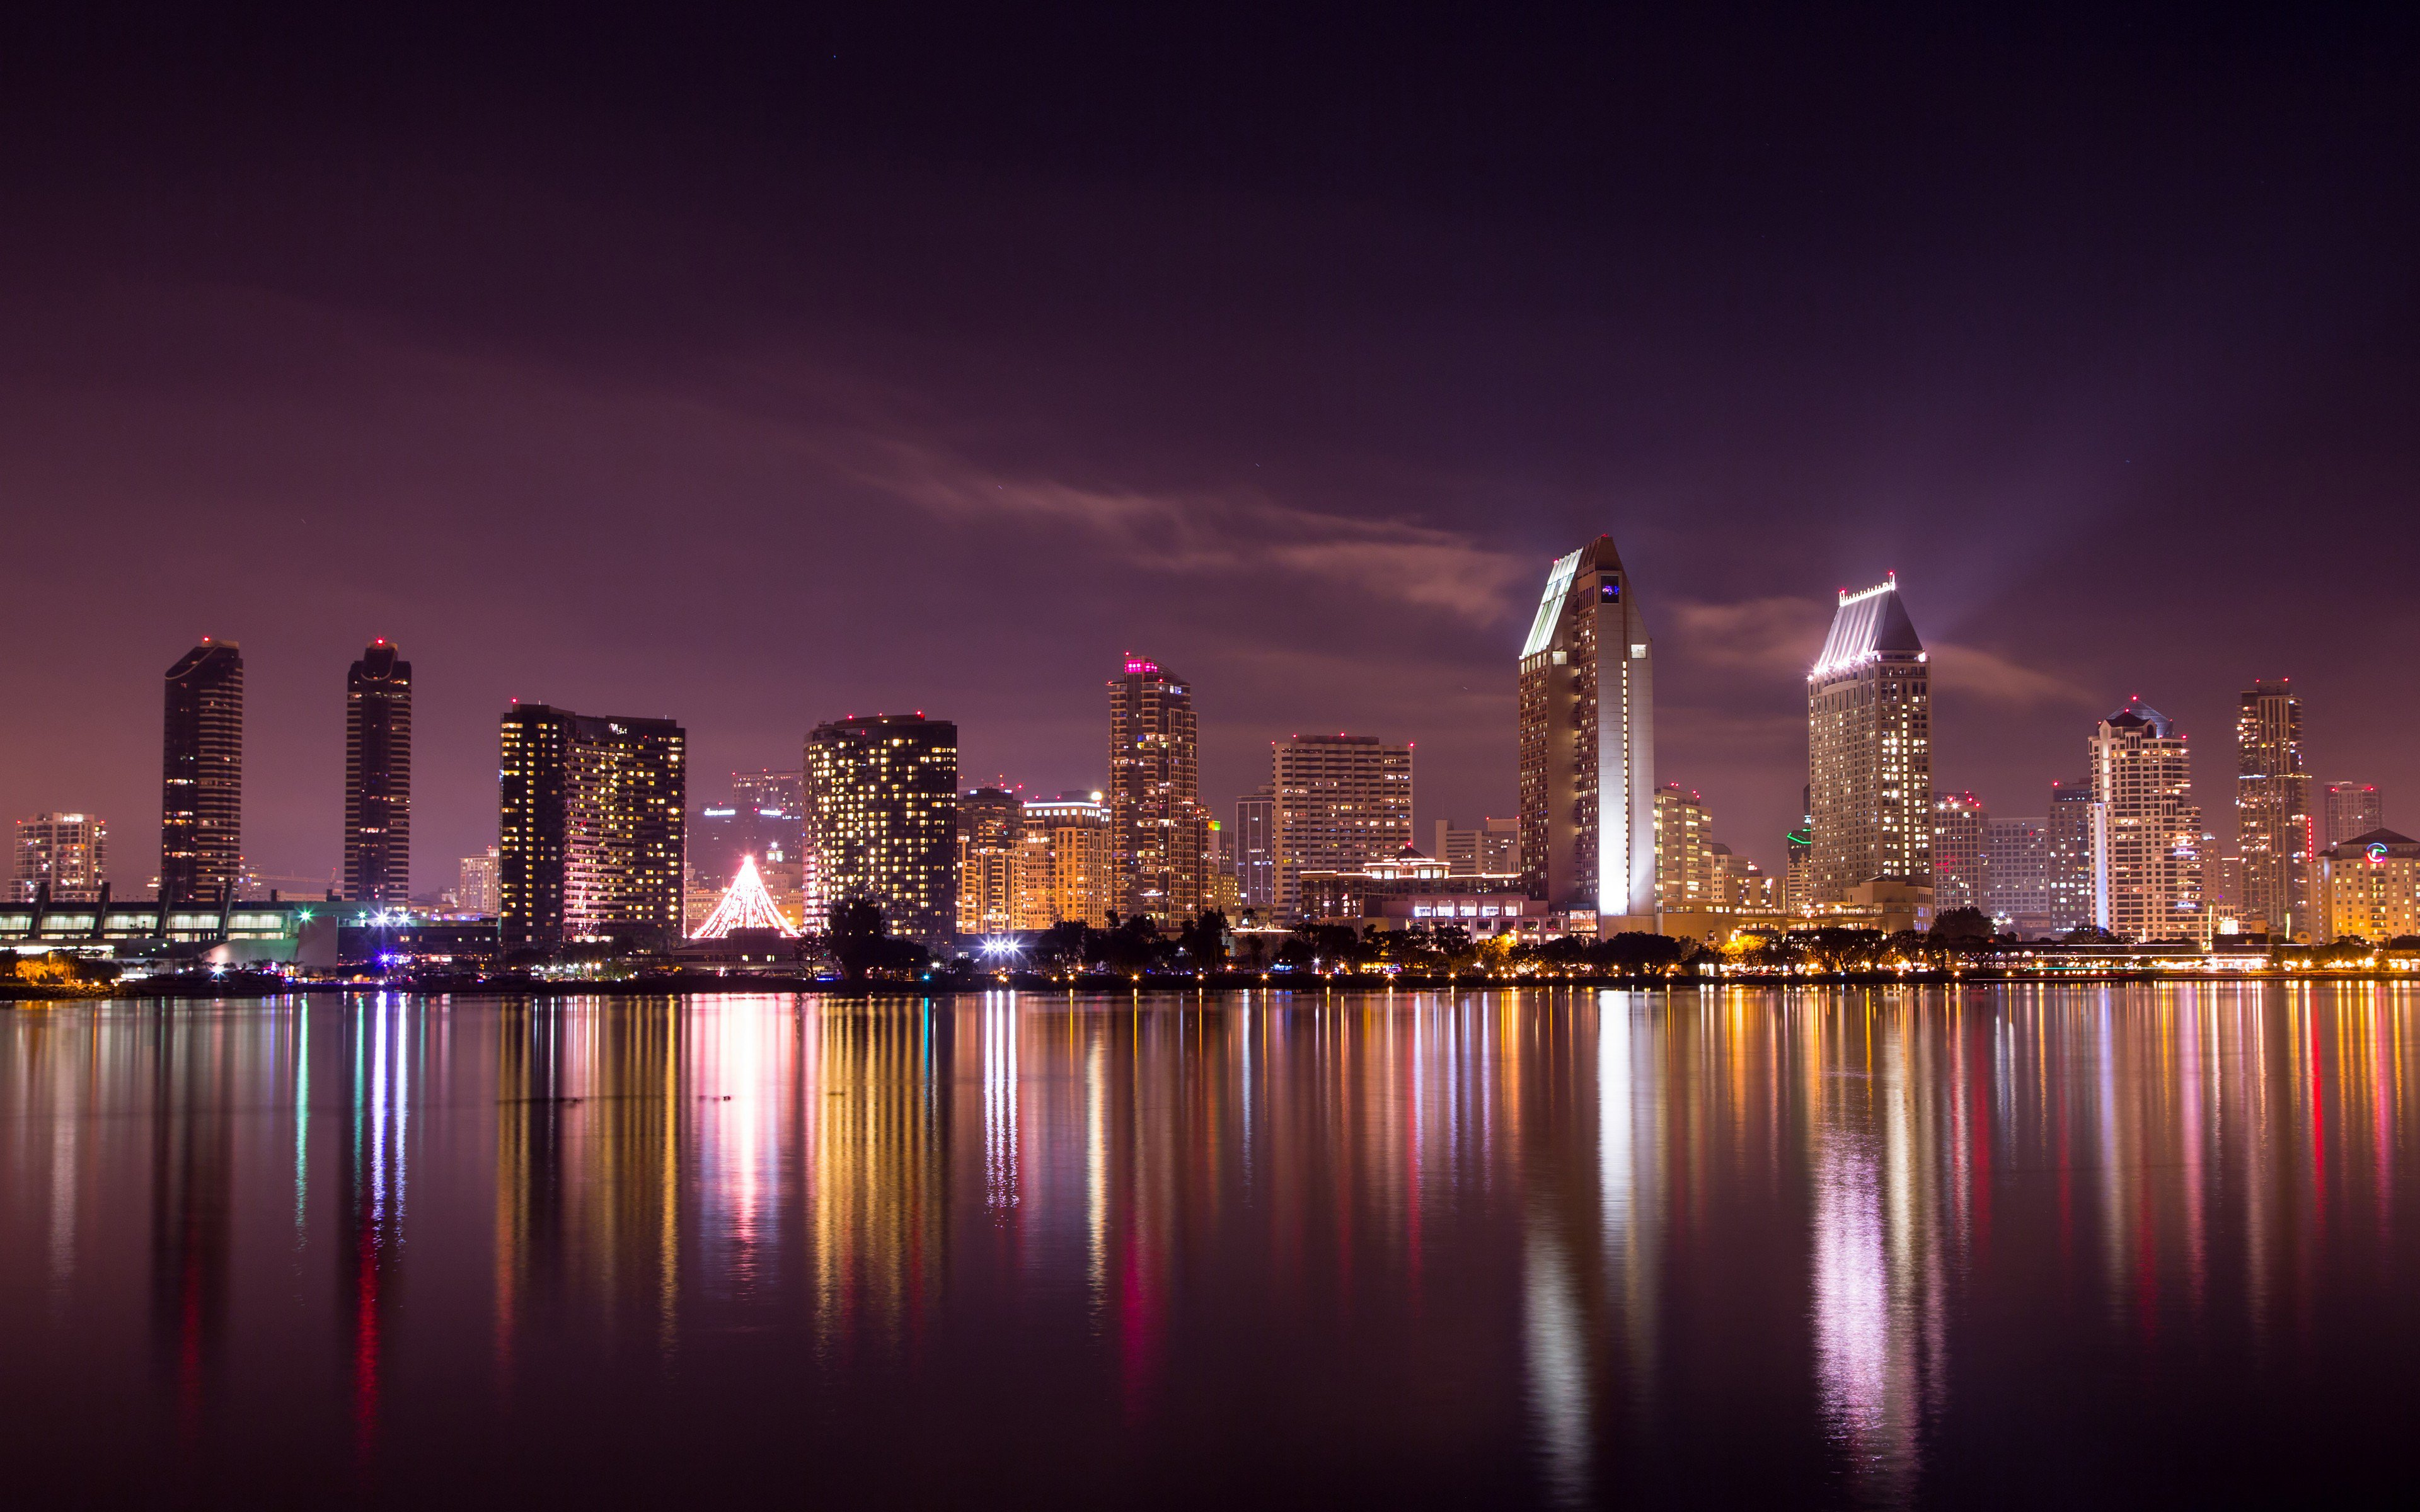 1280x2120 San Diego Skyline Iphone 6 Hd 4k Wallpapers Images Backgrounds Photos And Pictures